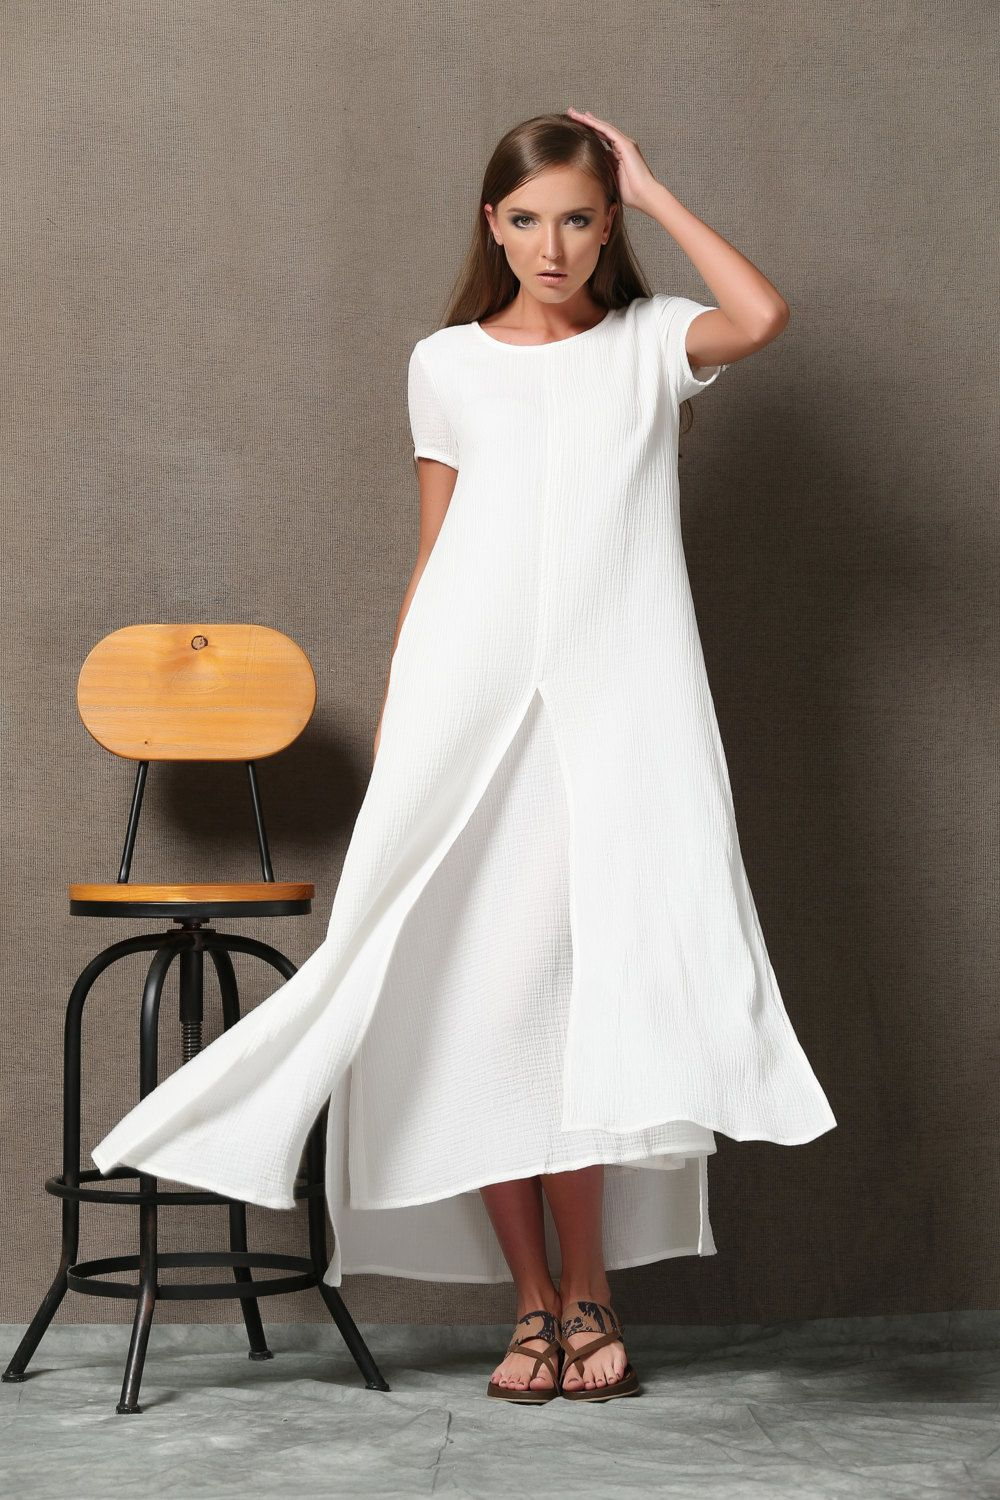 Linen dress, plus size clothing, Cotton dress, plus size dress ...